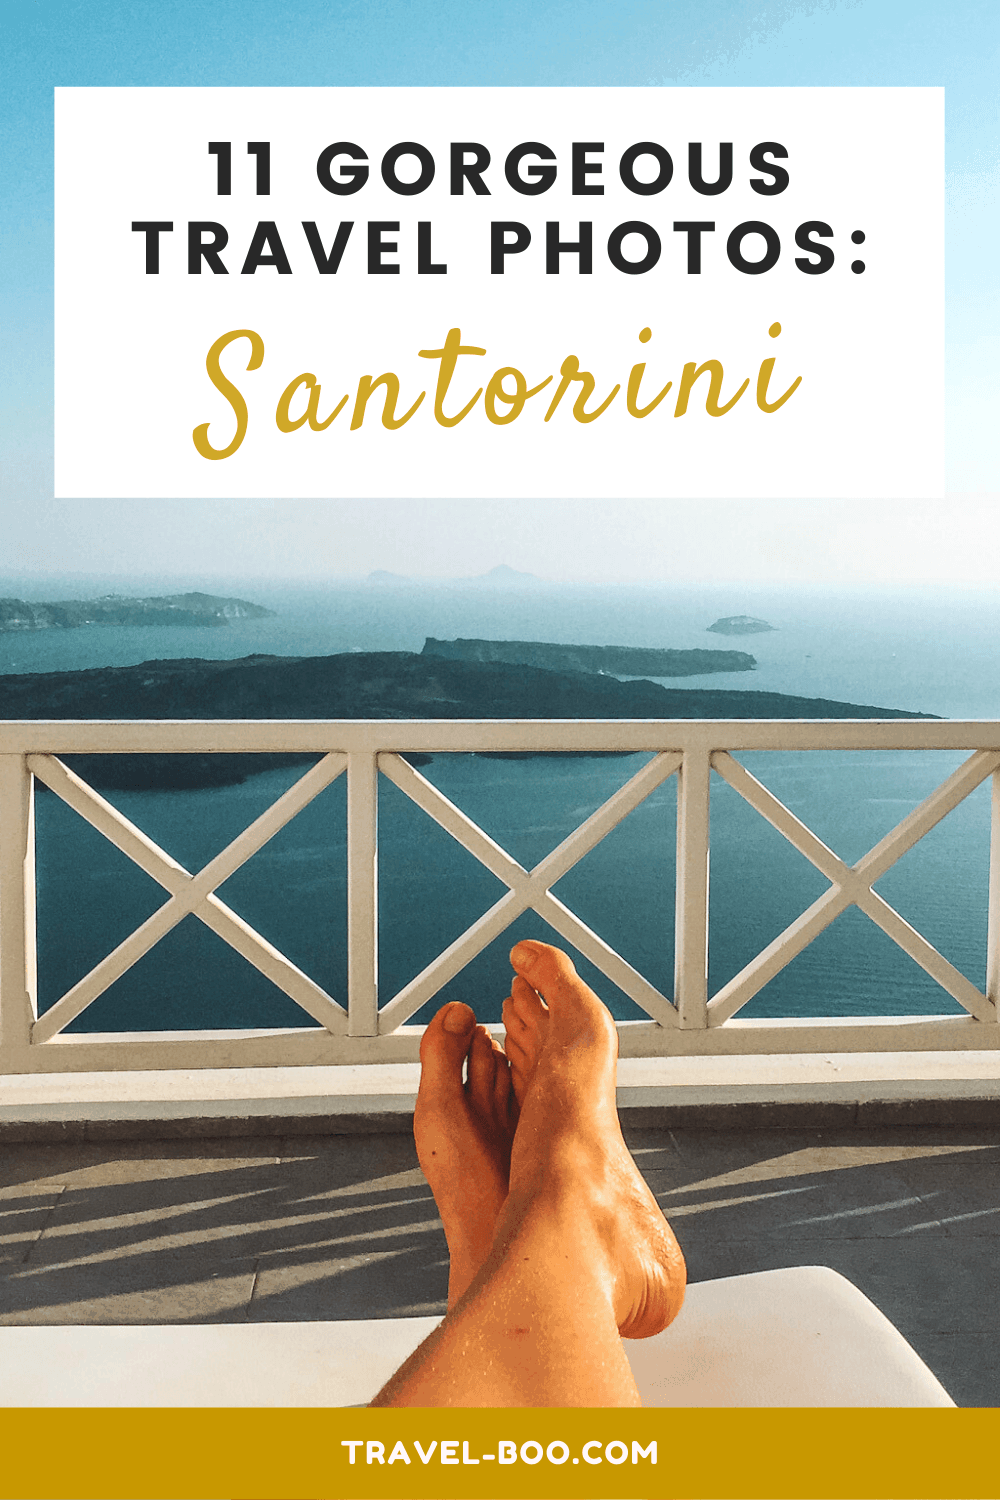 11 Beautiful Santorini Photos, Greece Travel, Greece Travel Guide, Greece Travel Tips, Greece Travel Things to do, Greece Travel Destinations, European Travel Destinations, Europe Travel, Europe Travel Guide #santorinitravel #greecetravel #santorini